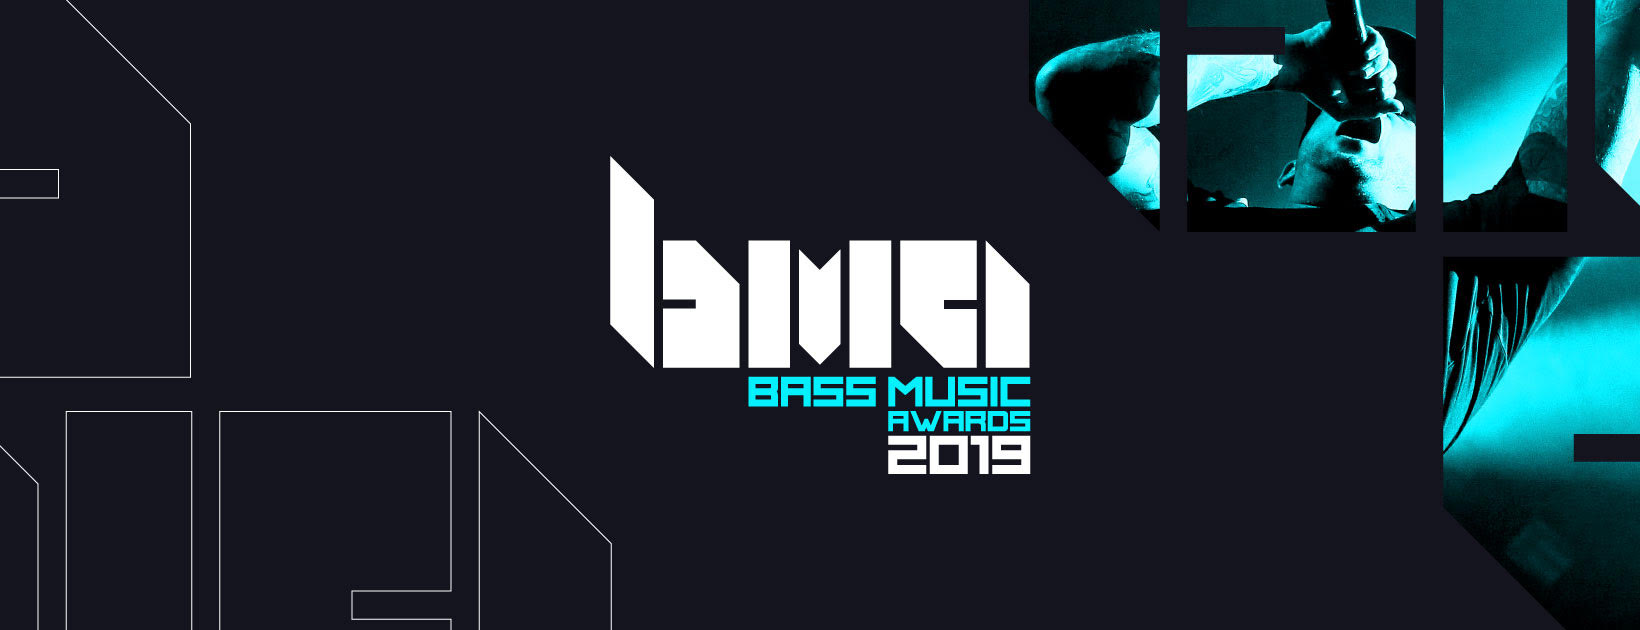 bass music awards 2019